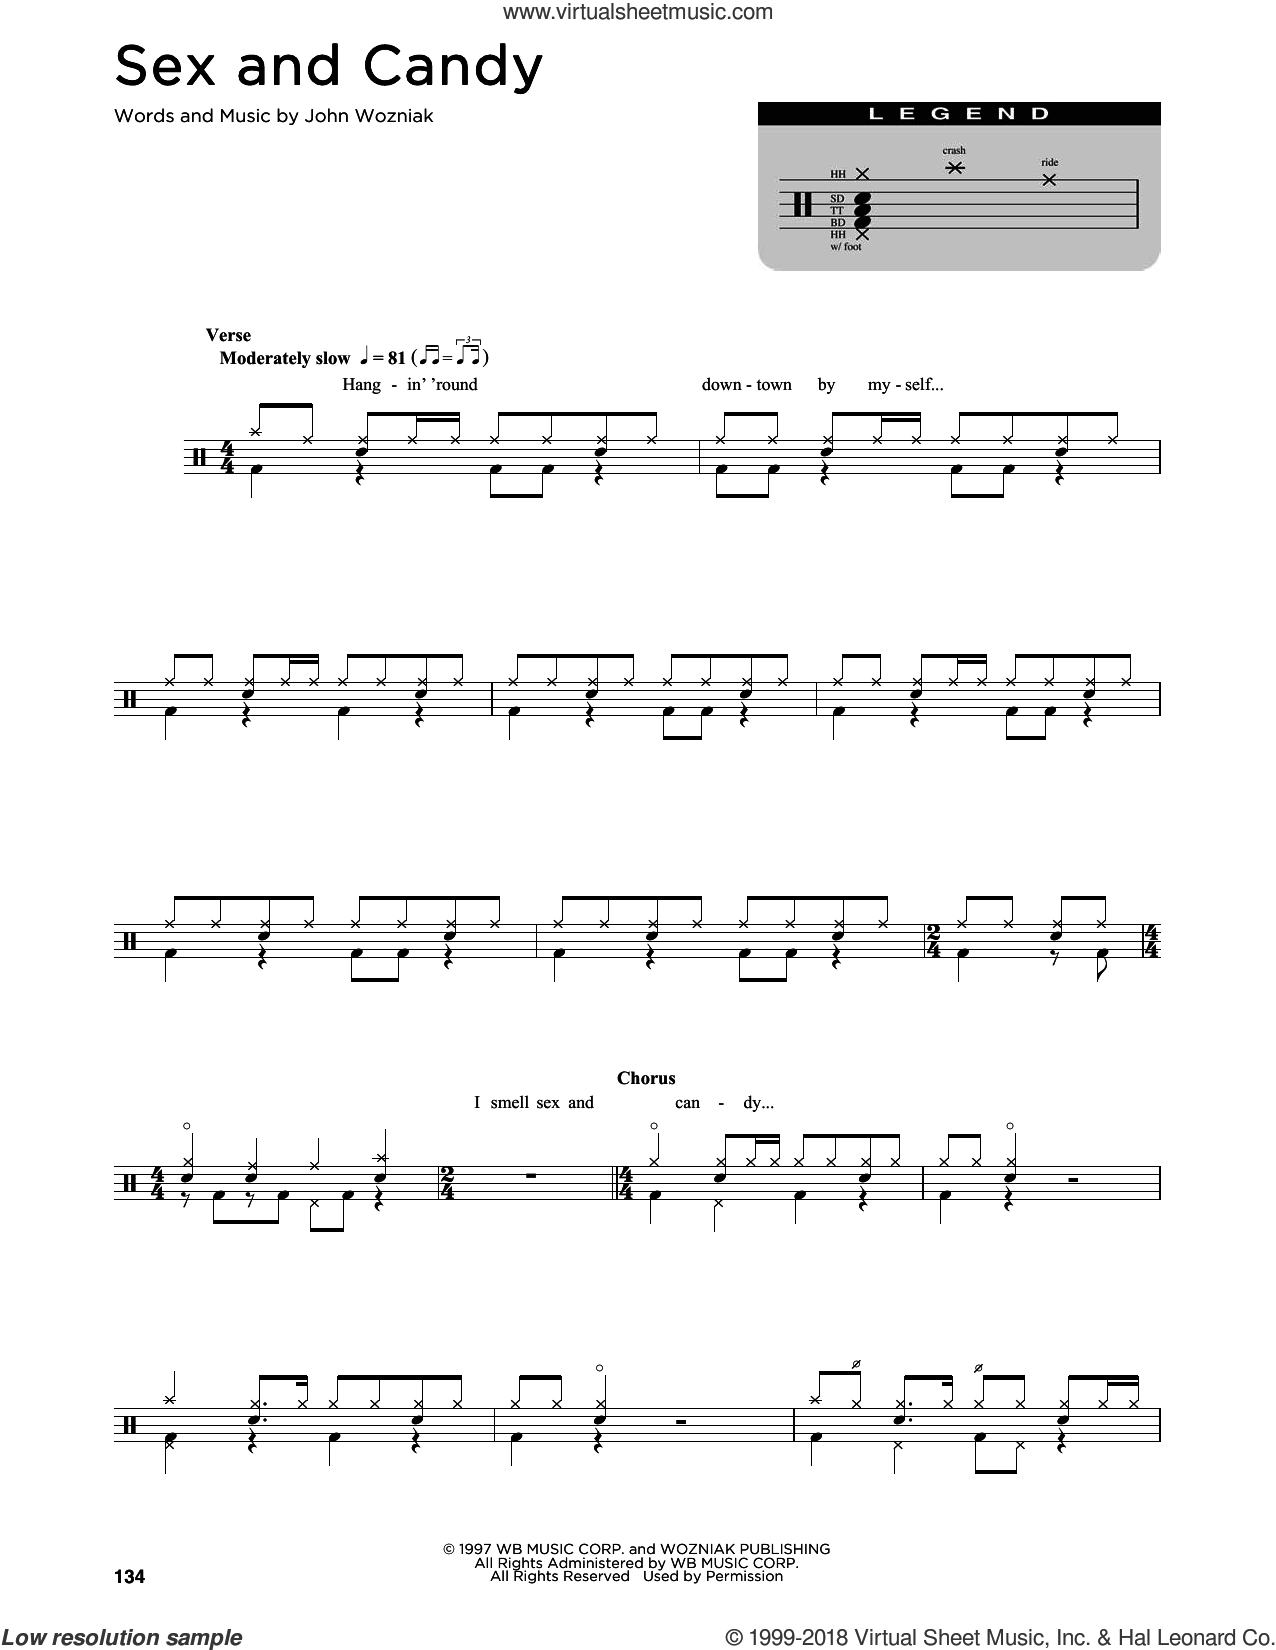 Sex And Candy sheet music for drums (percussions) by Marcy Playground and John Wozniak, intermediate skill level